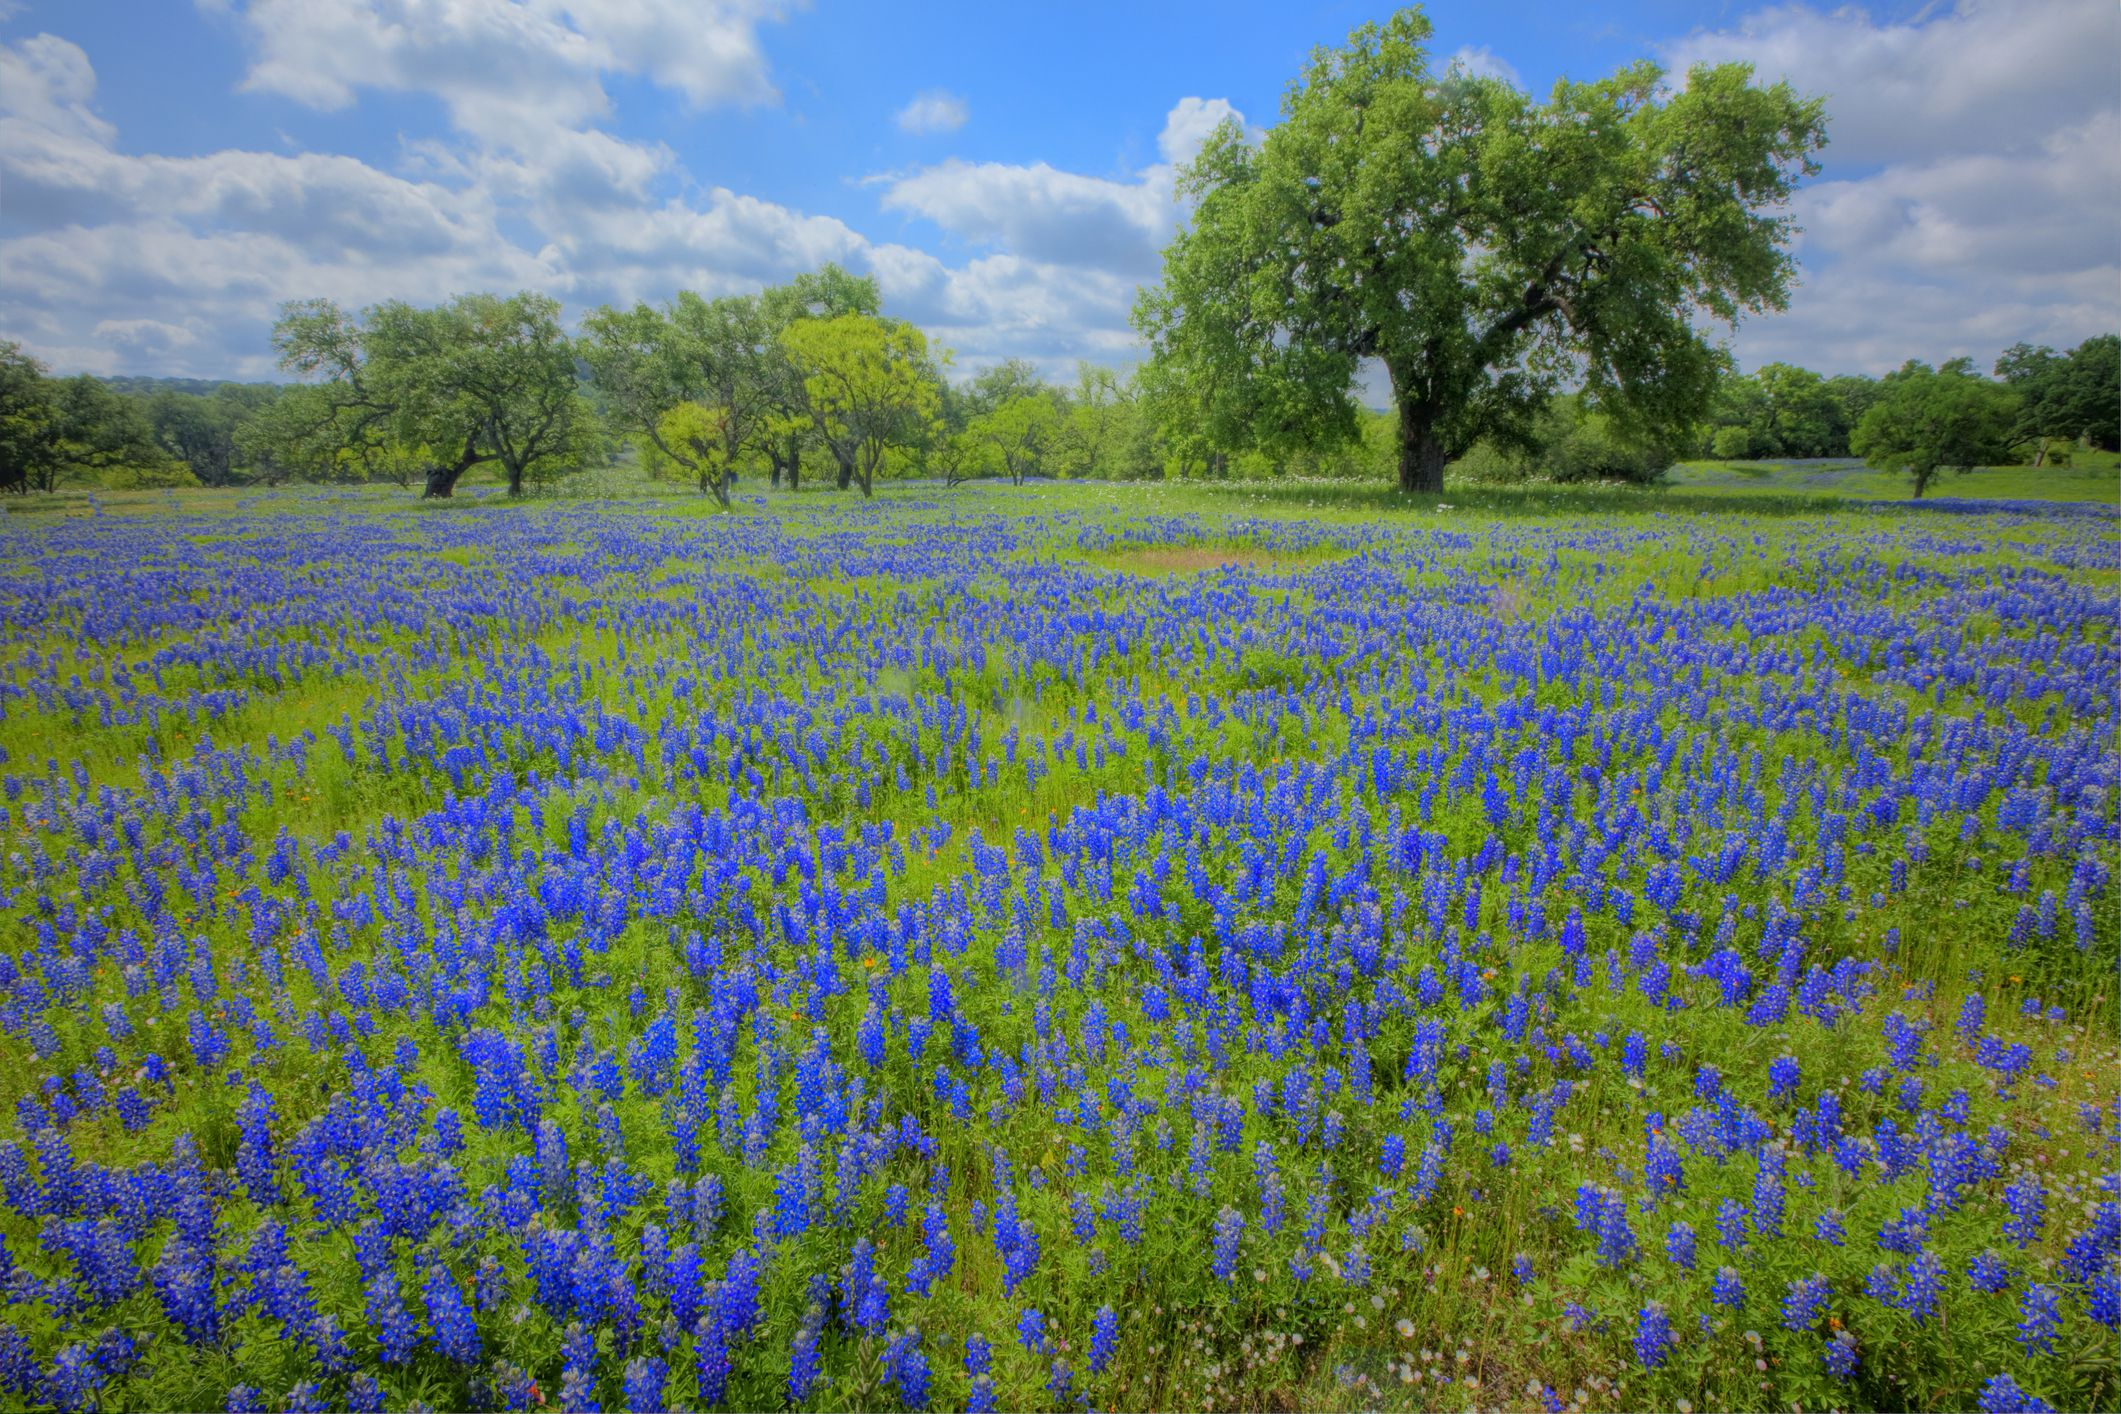 How to Find Wildflowers in the Texas Hill Country